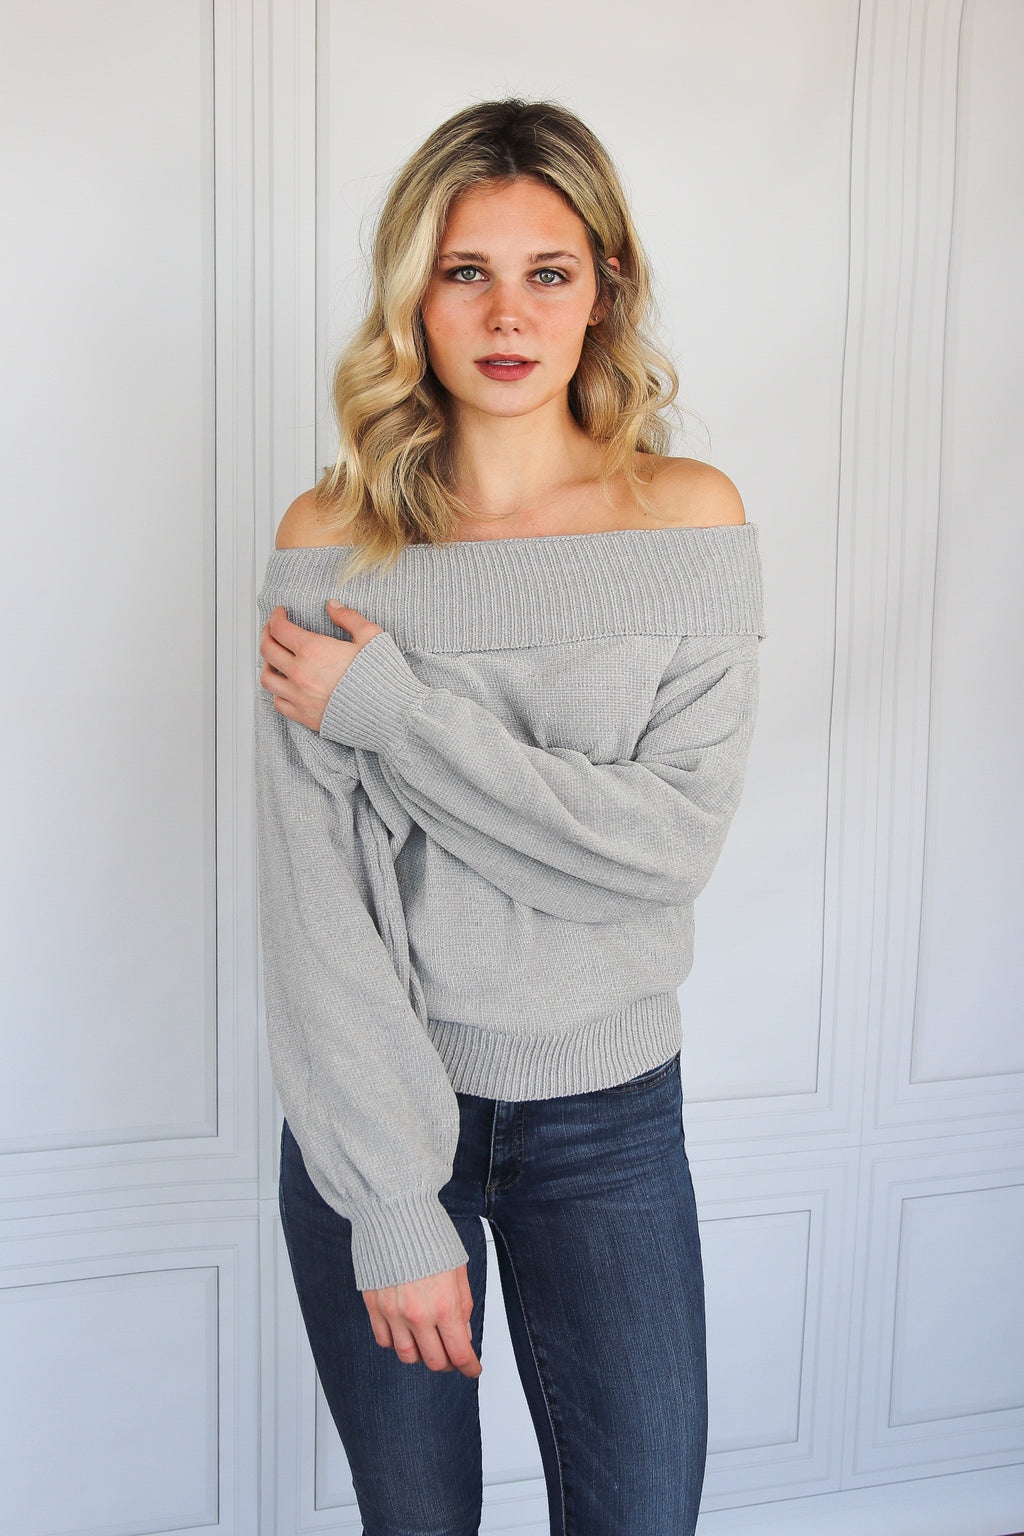 Grey Off-the-Shoulder Chenille Sweater - Shop Core Collection